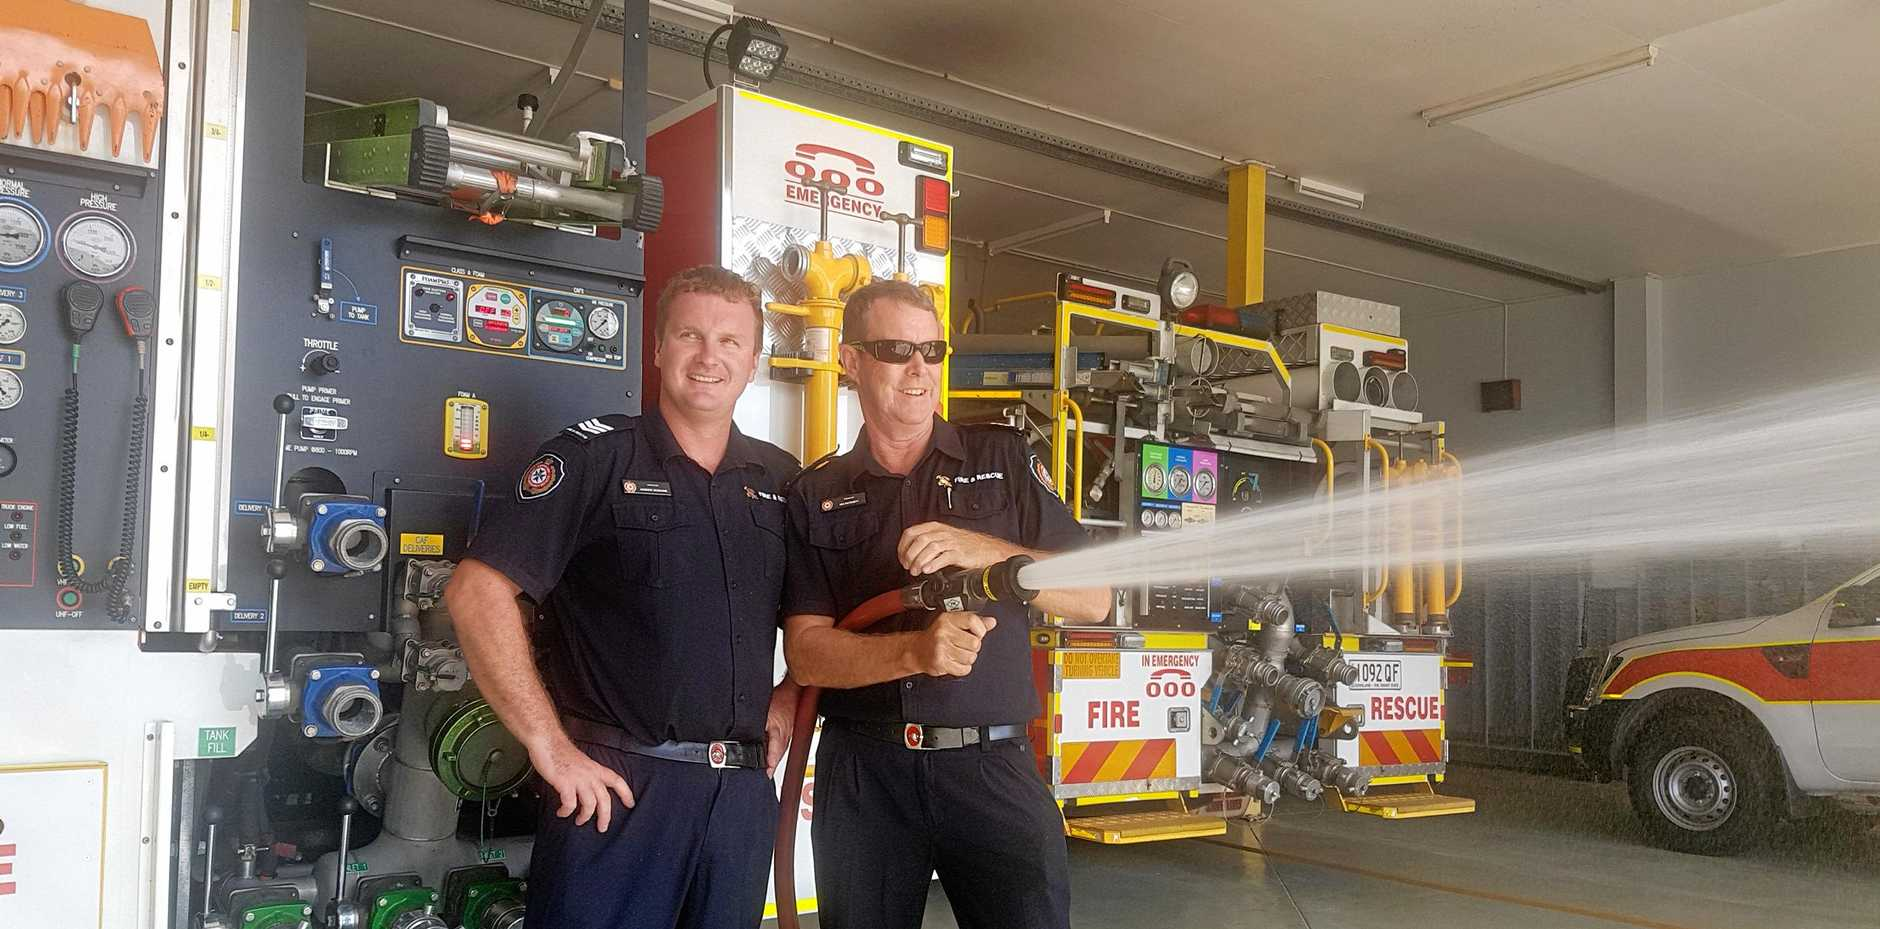 Bowen firefighters Ian Patchett and Andrew McShane are cautioning local residents to remain vigilant this grass fire season.